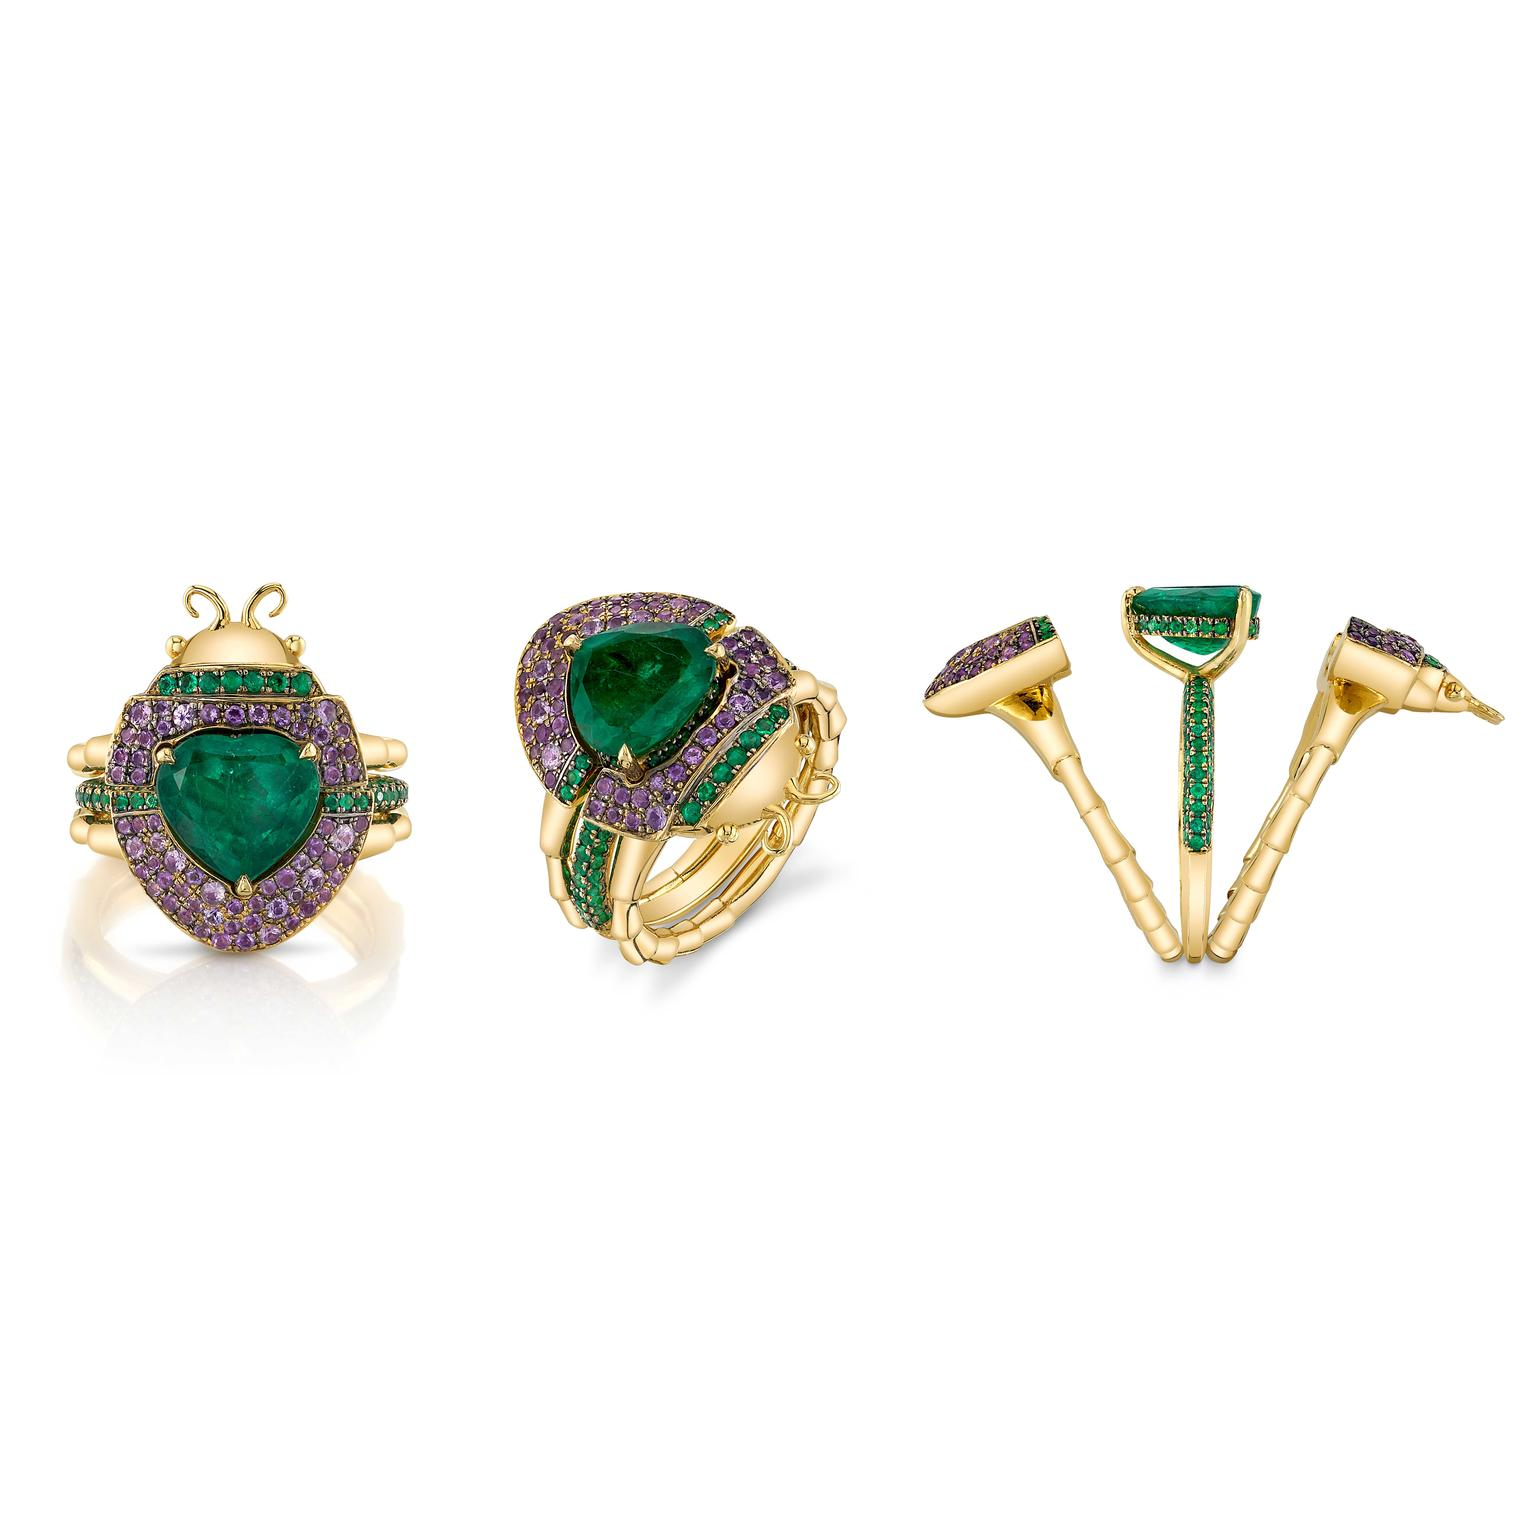 Daniela Villegas adaptable Rings